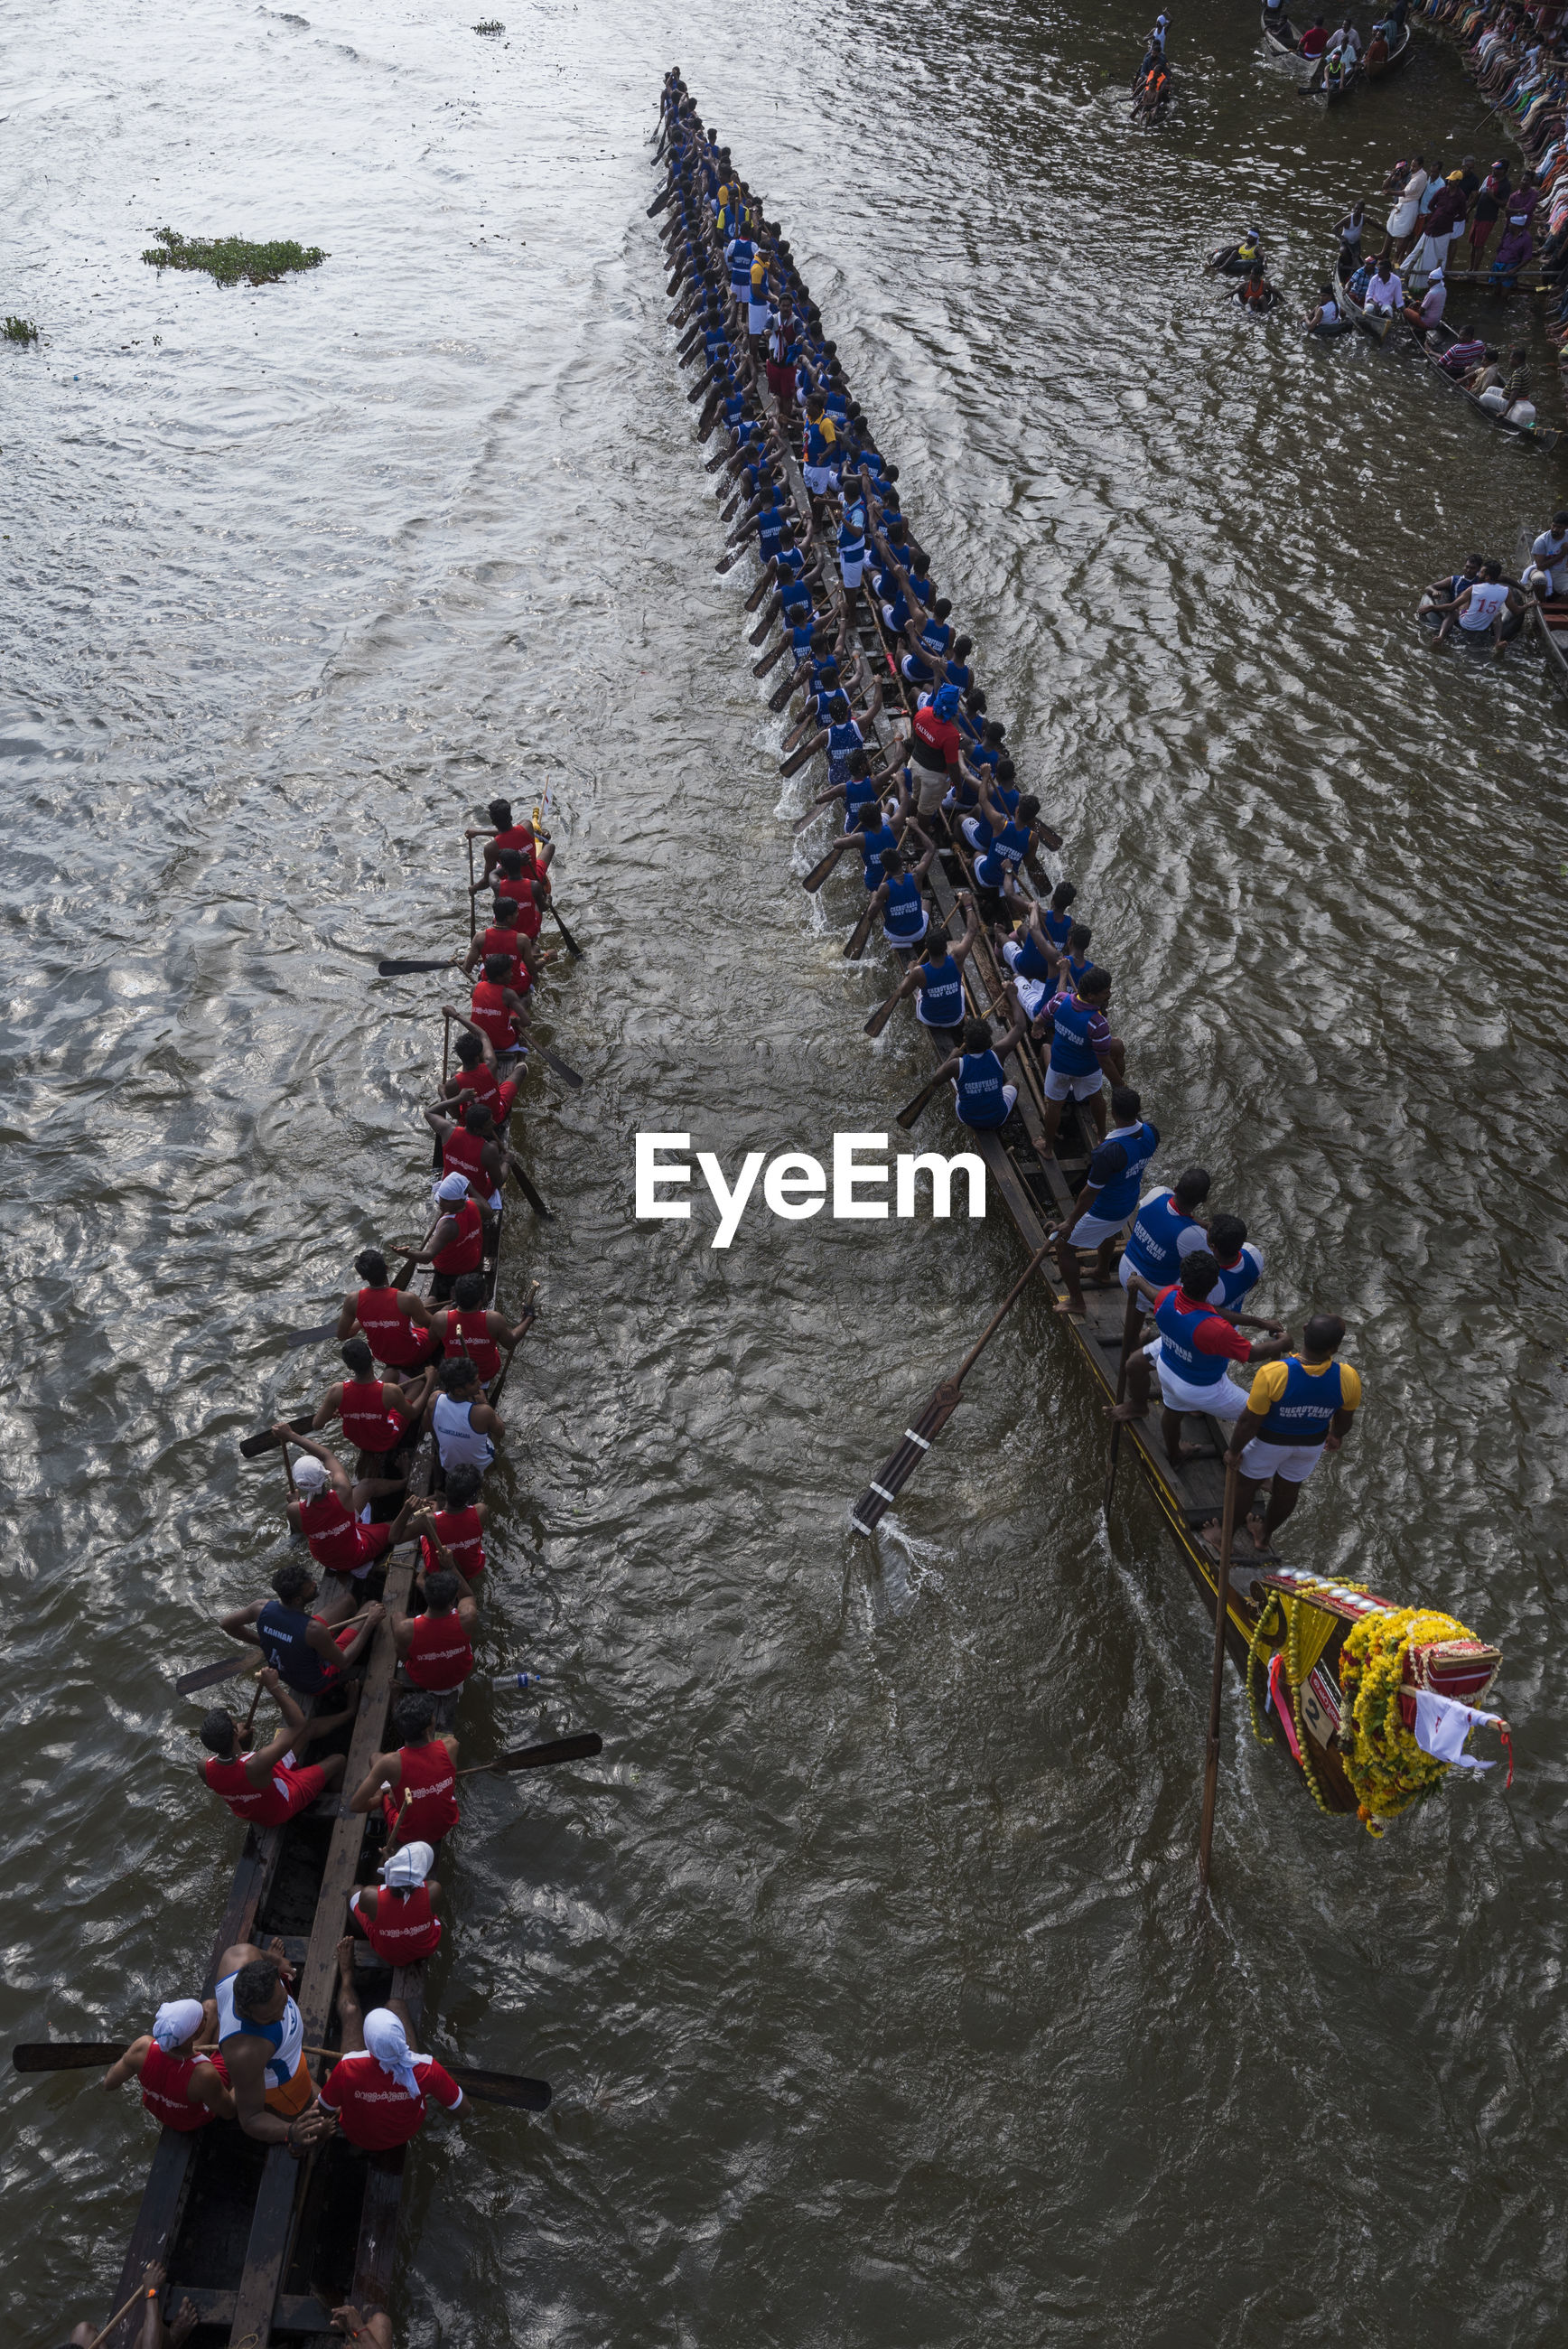 HIGH ANGLE VIEW OF PEOPLE IN BOAT